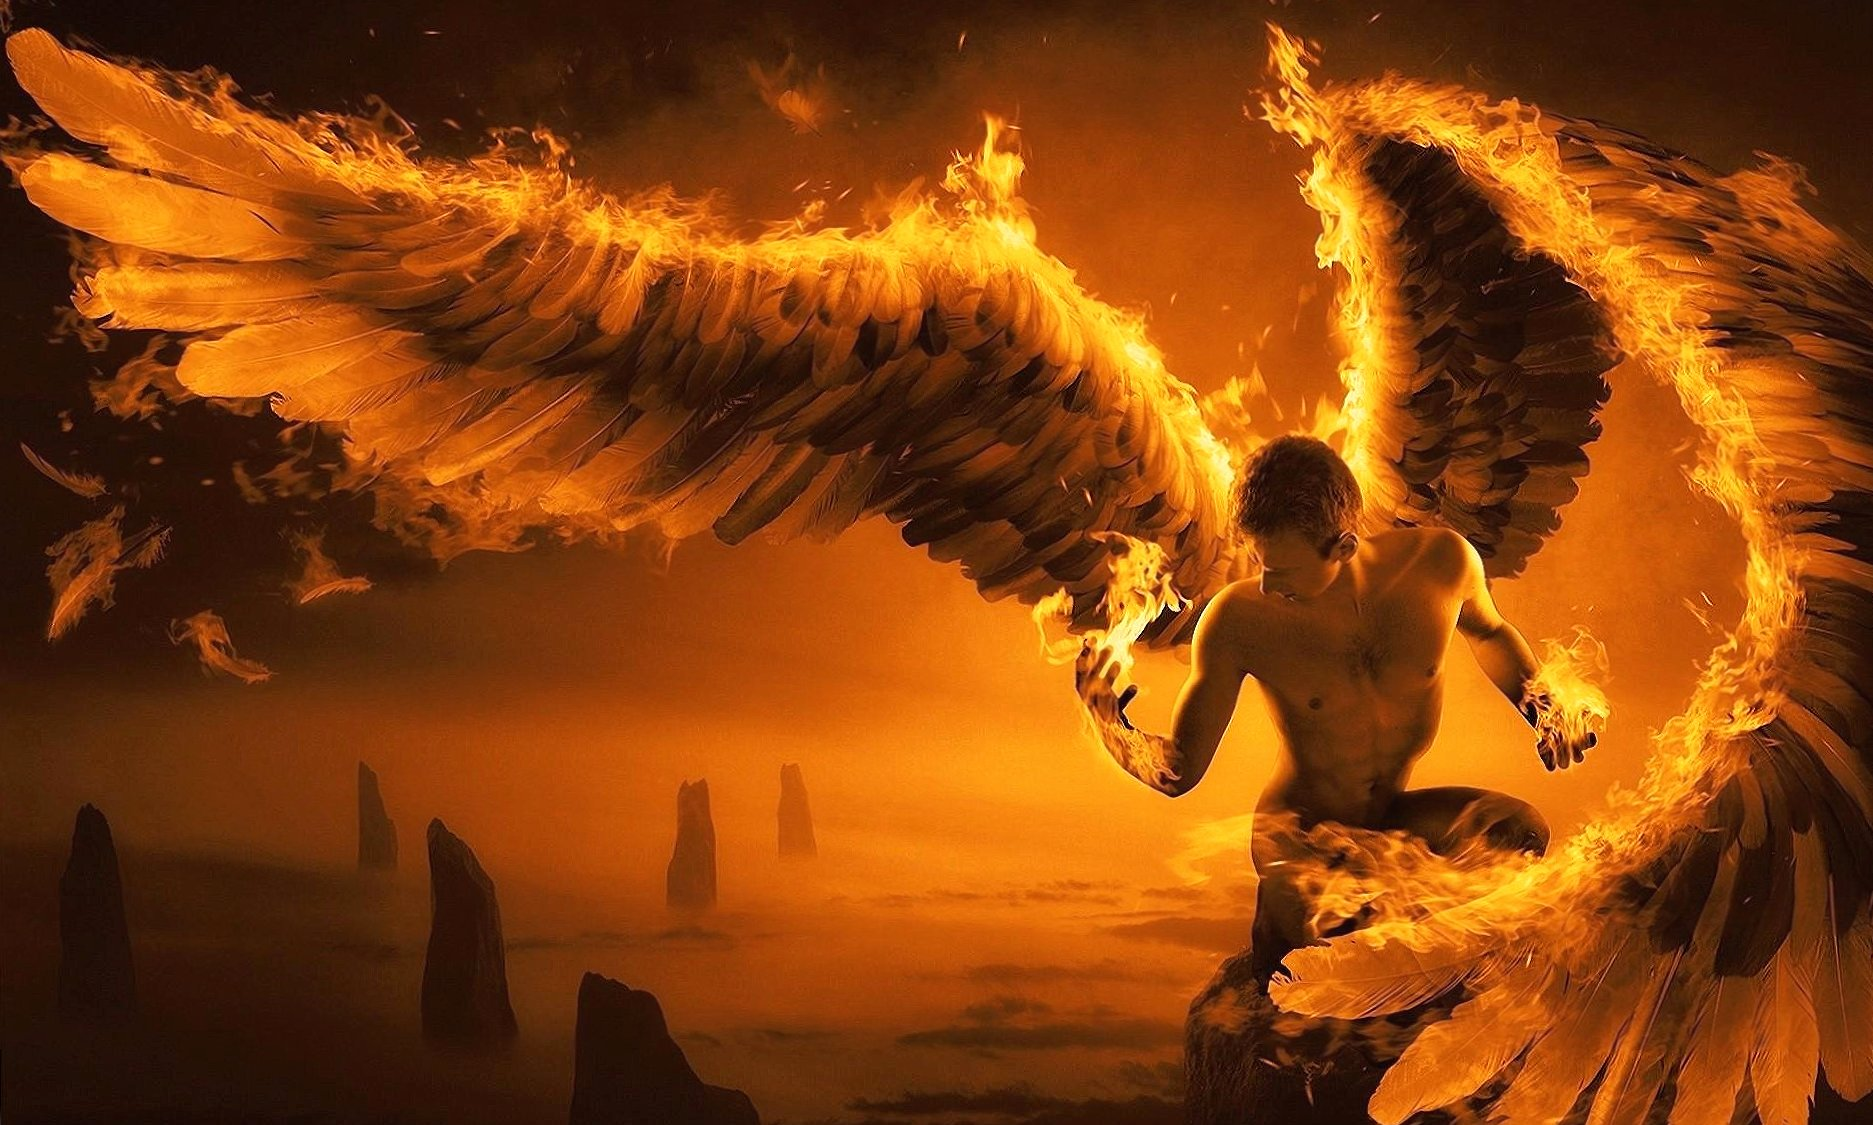 Fired angel man wallpapers HD quality